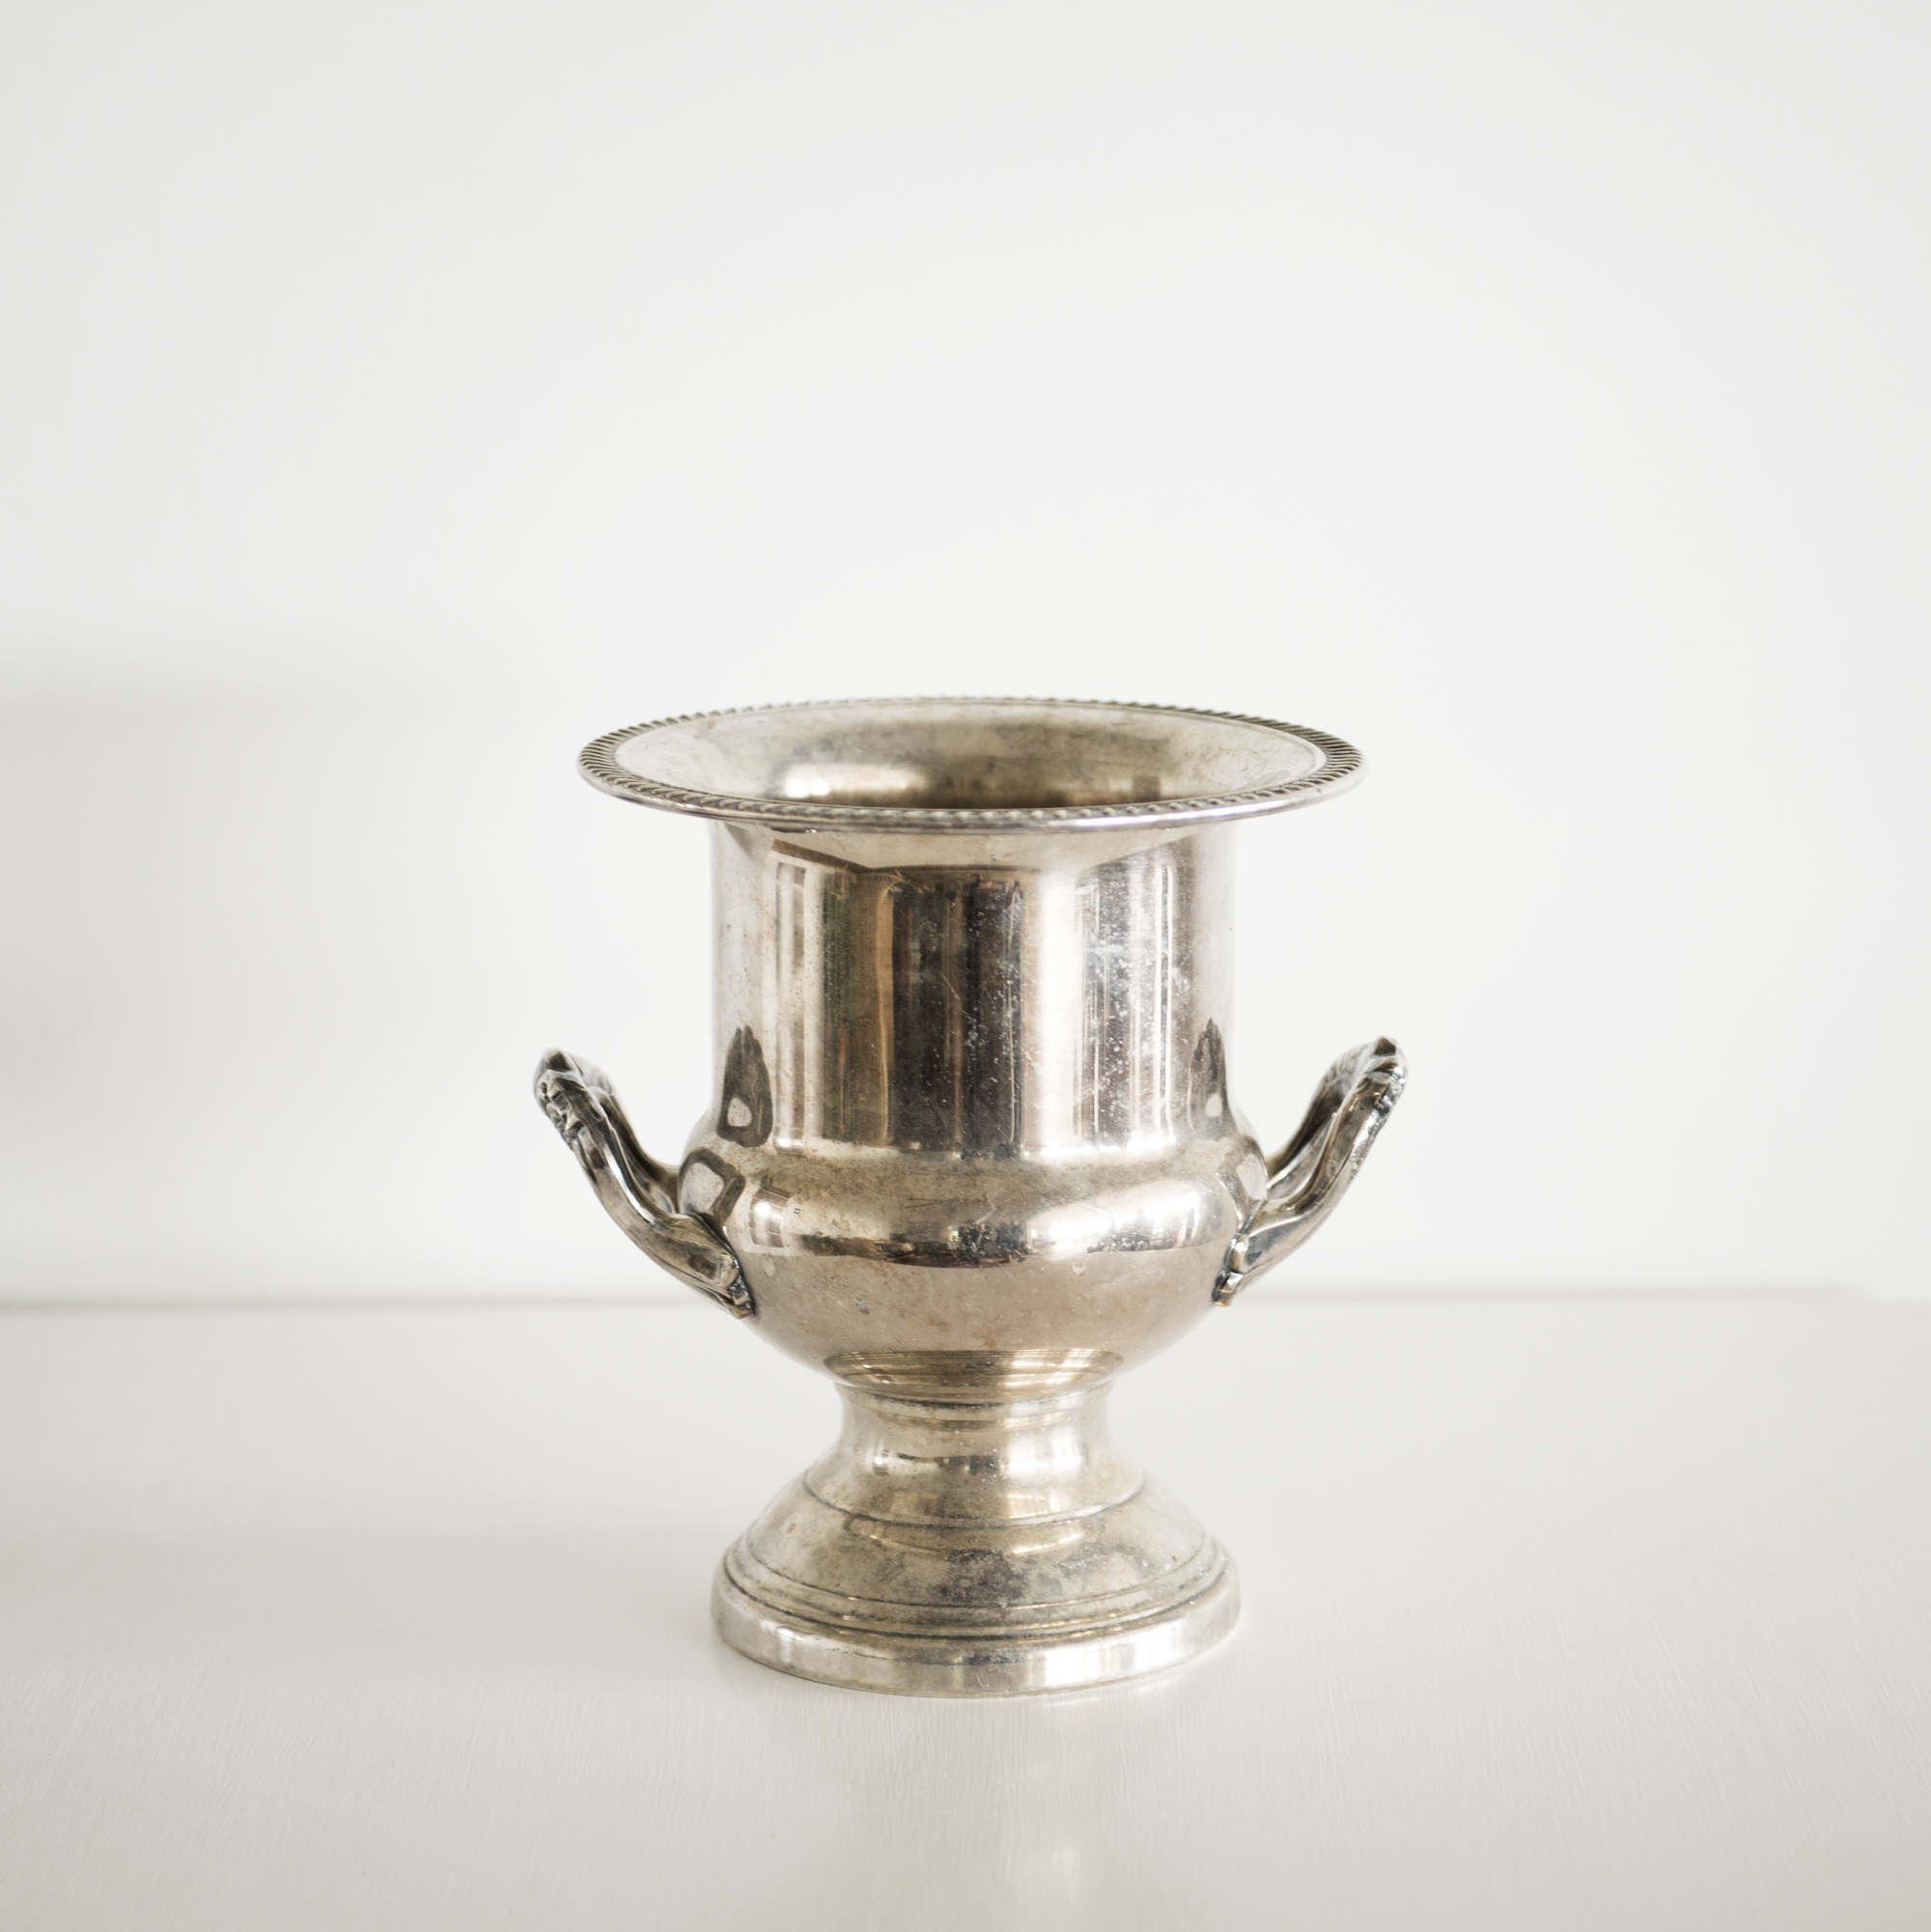 Vintage Silver Champagne/Ice Bucket   $ 15ea   Qty 2